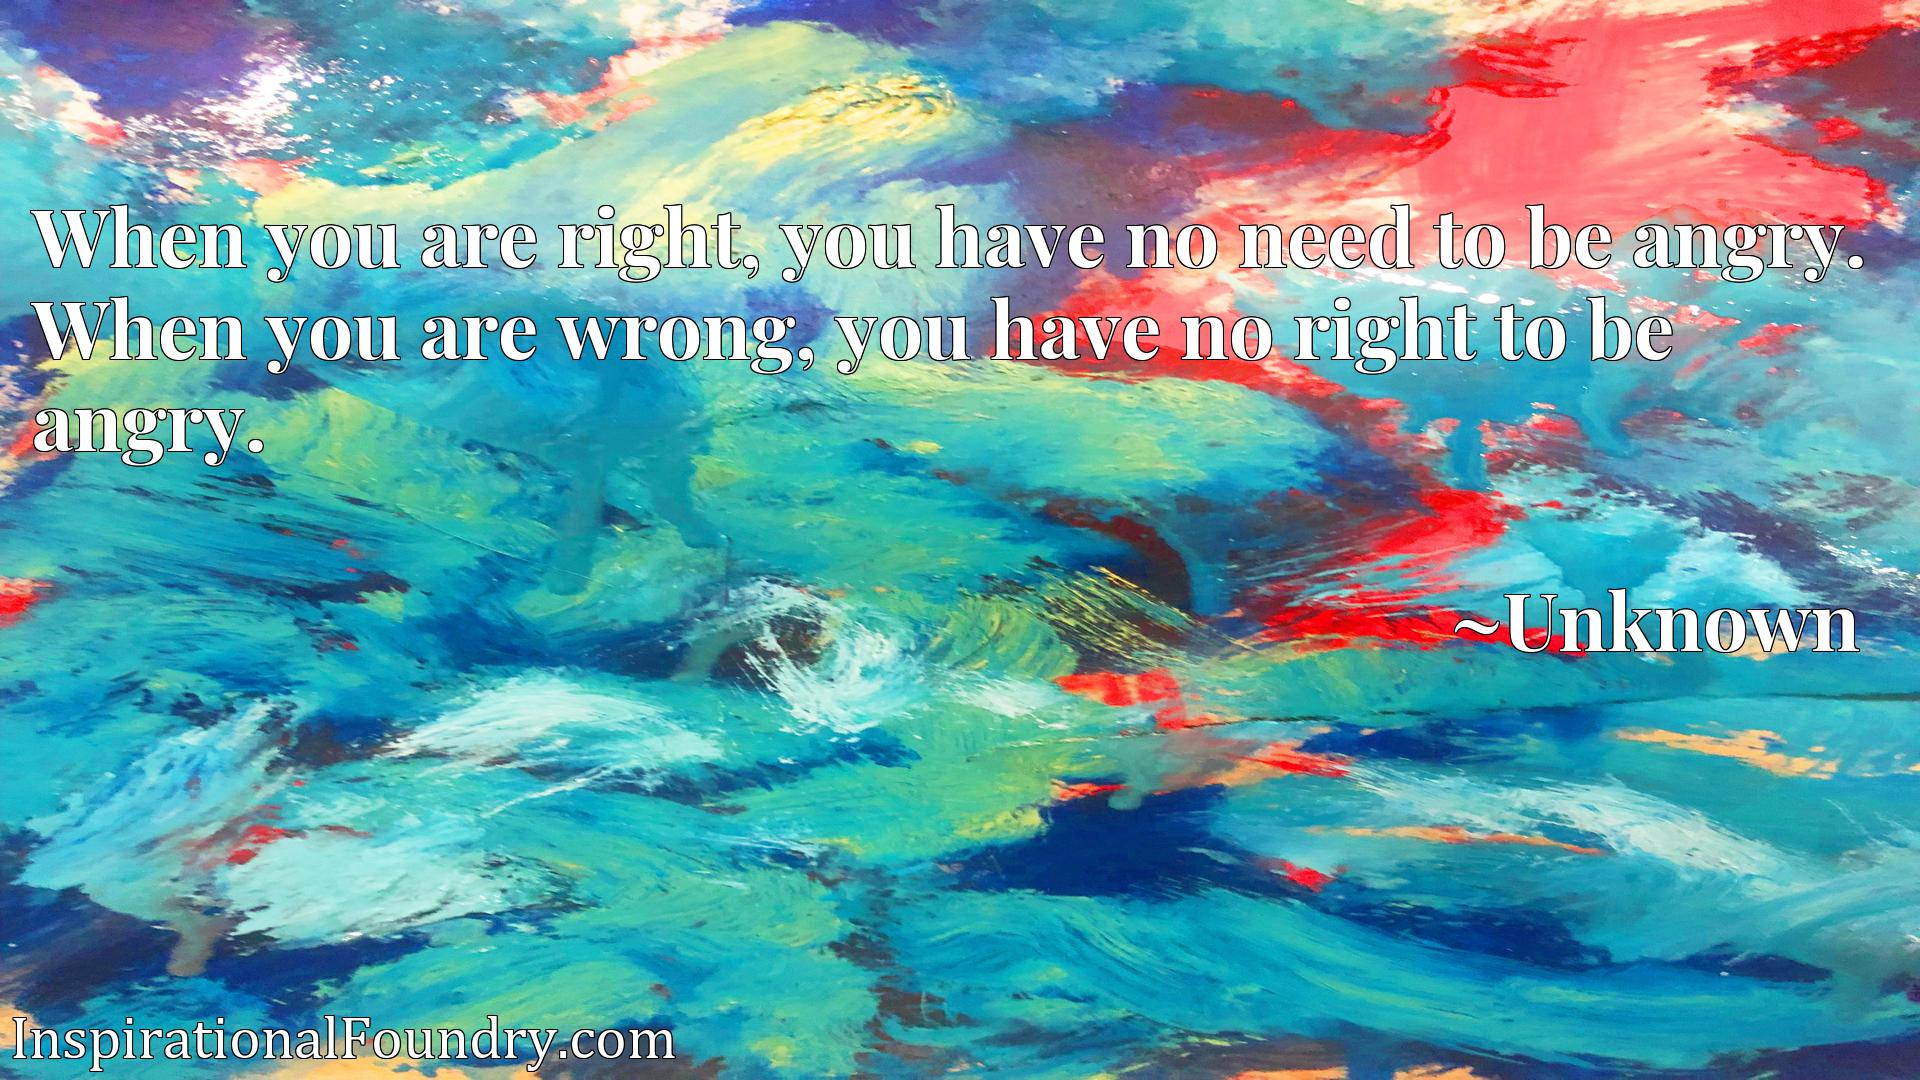 When you are right, you have no need to be angry. When you are wrong, you have no right to be angry.